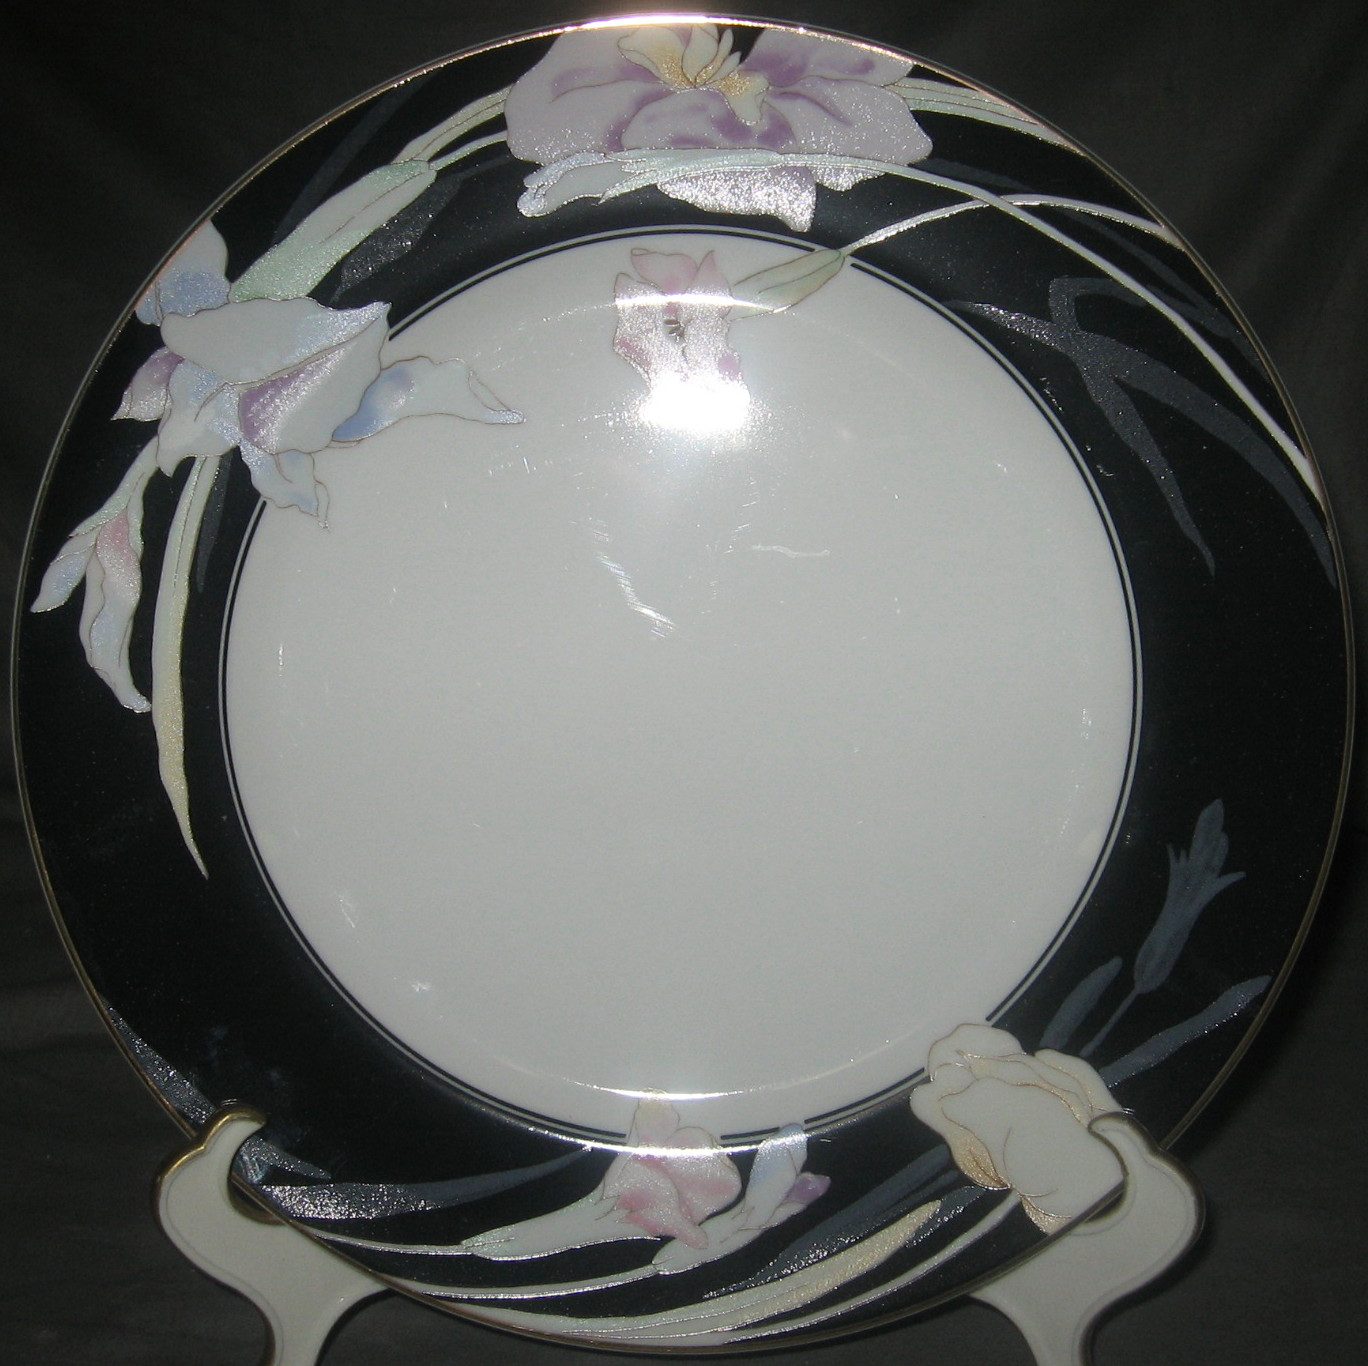 Mikasa Charisma Black : dinner plate patterns - pezcame.com